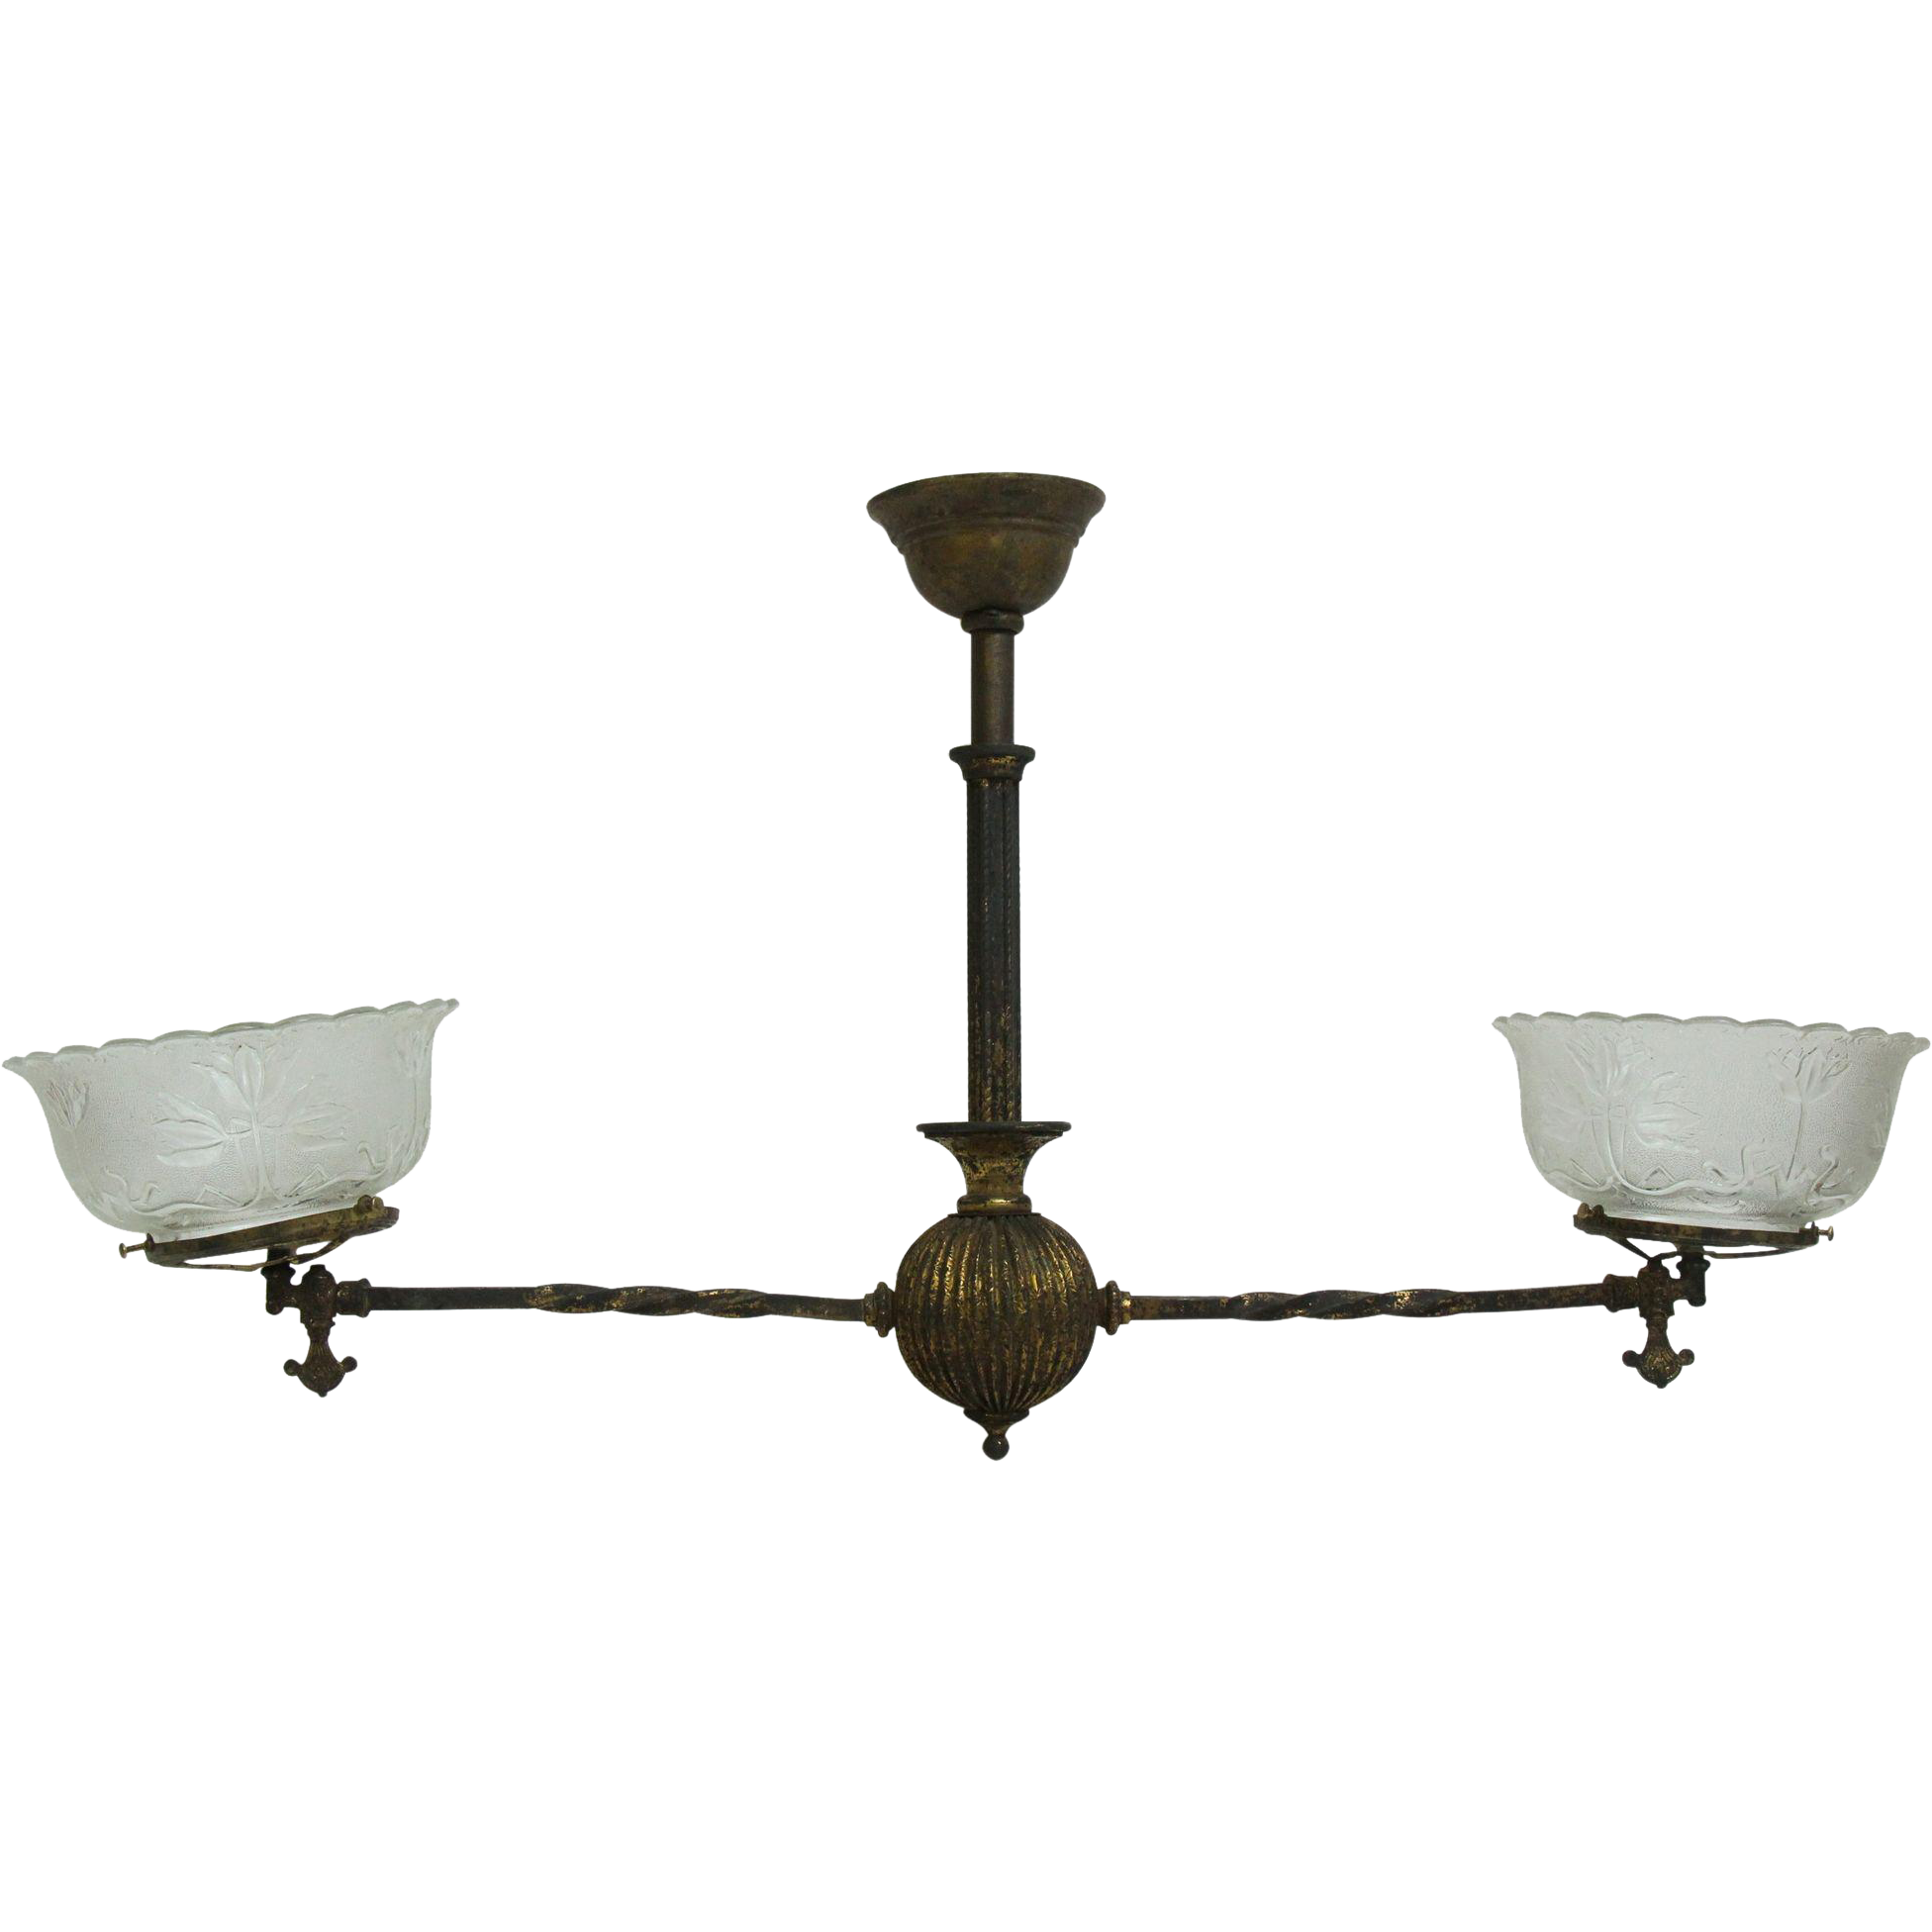 19th Century gas fixture with glass shades